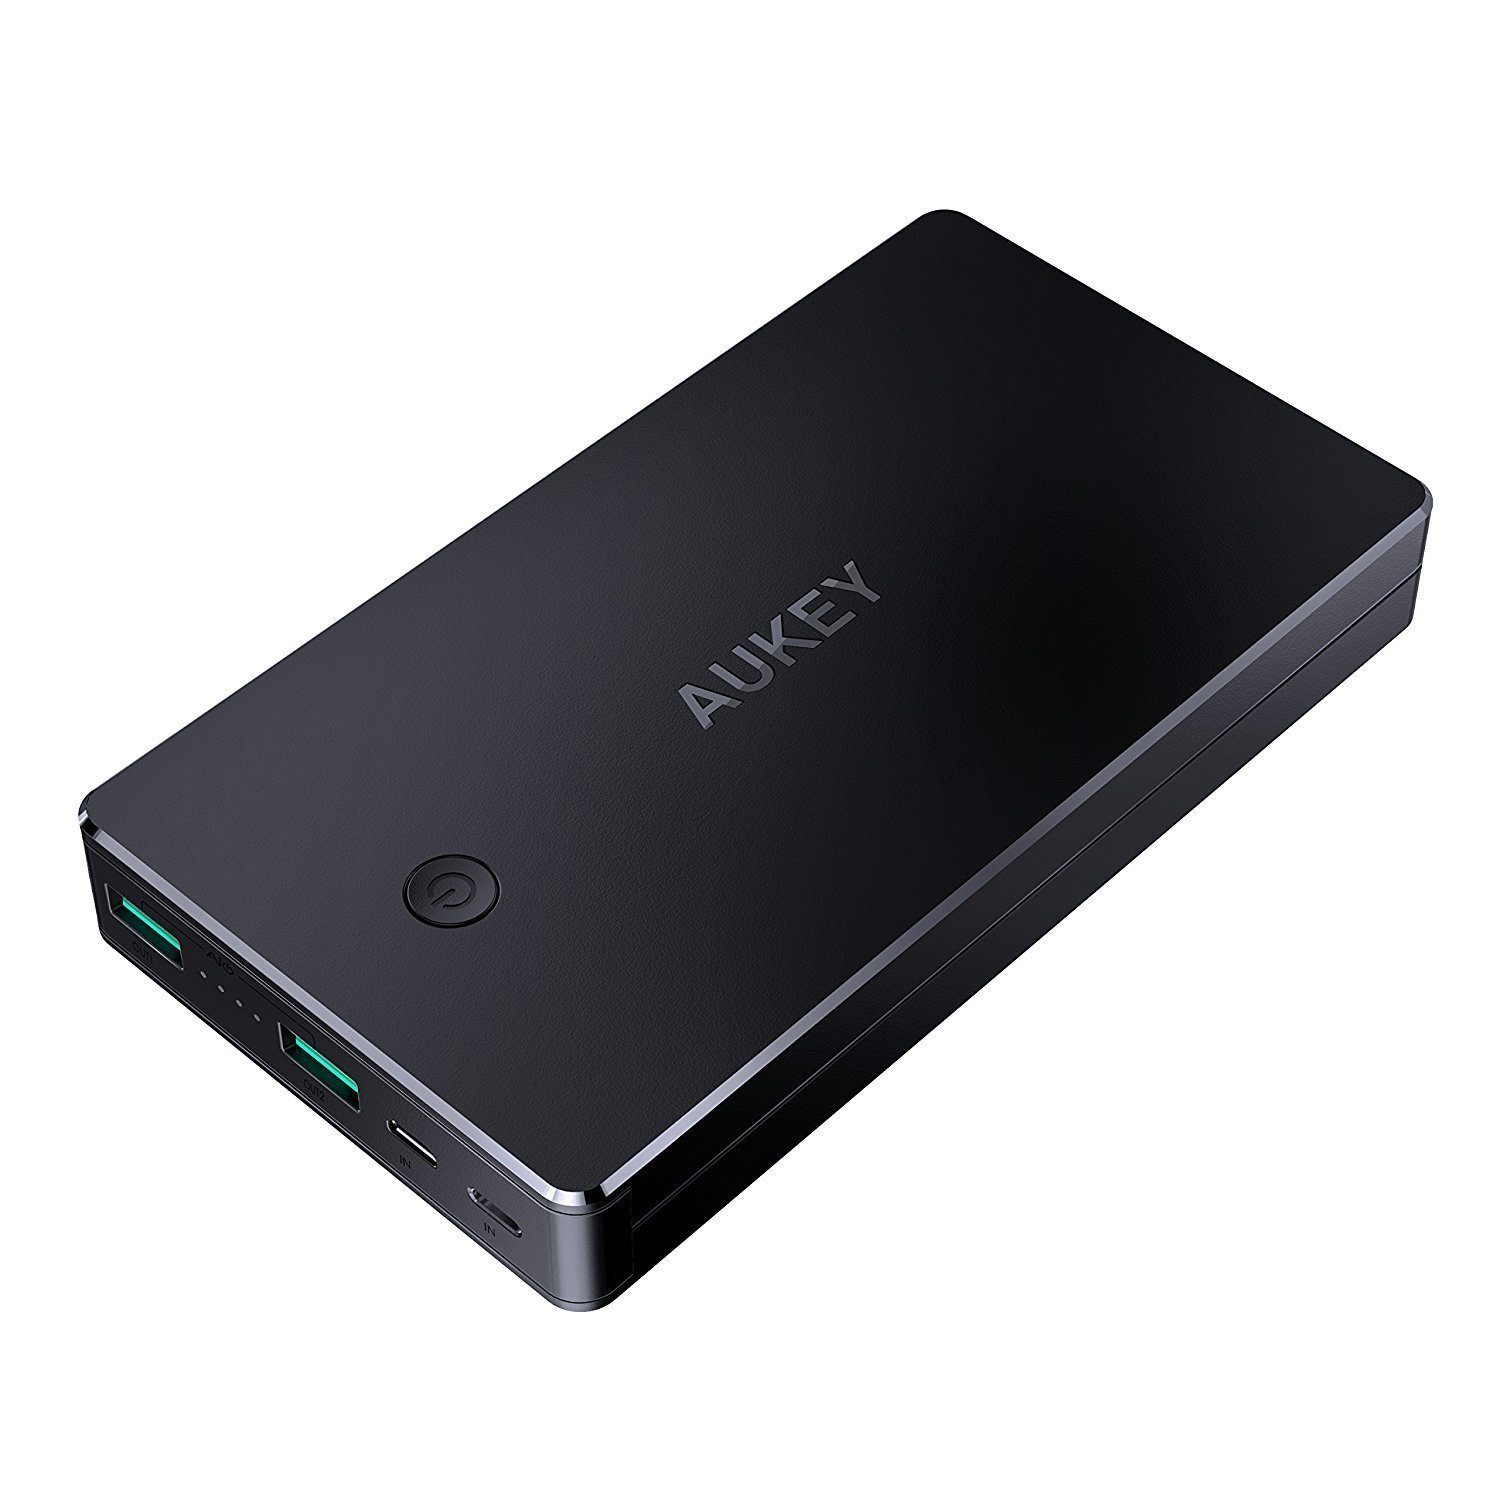 AUKEY 20000mAh Power Bank with Lightning & Micro Input Portable Charger, 3.4A Dual-USB Output Battery Pack for iPhone X / 8 / Plus, iPad Pro and More